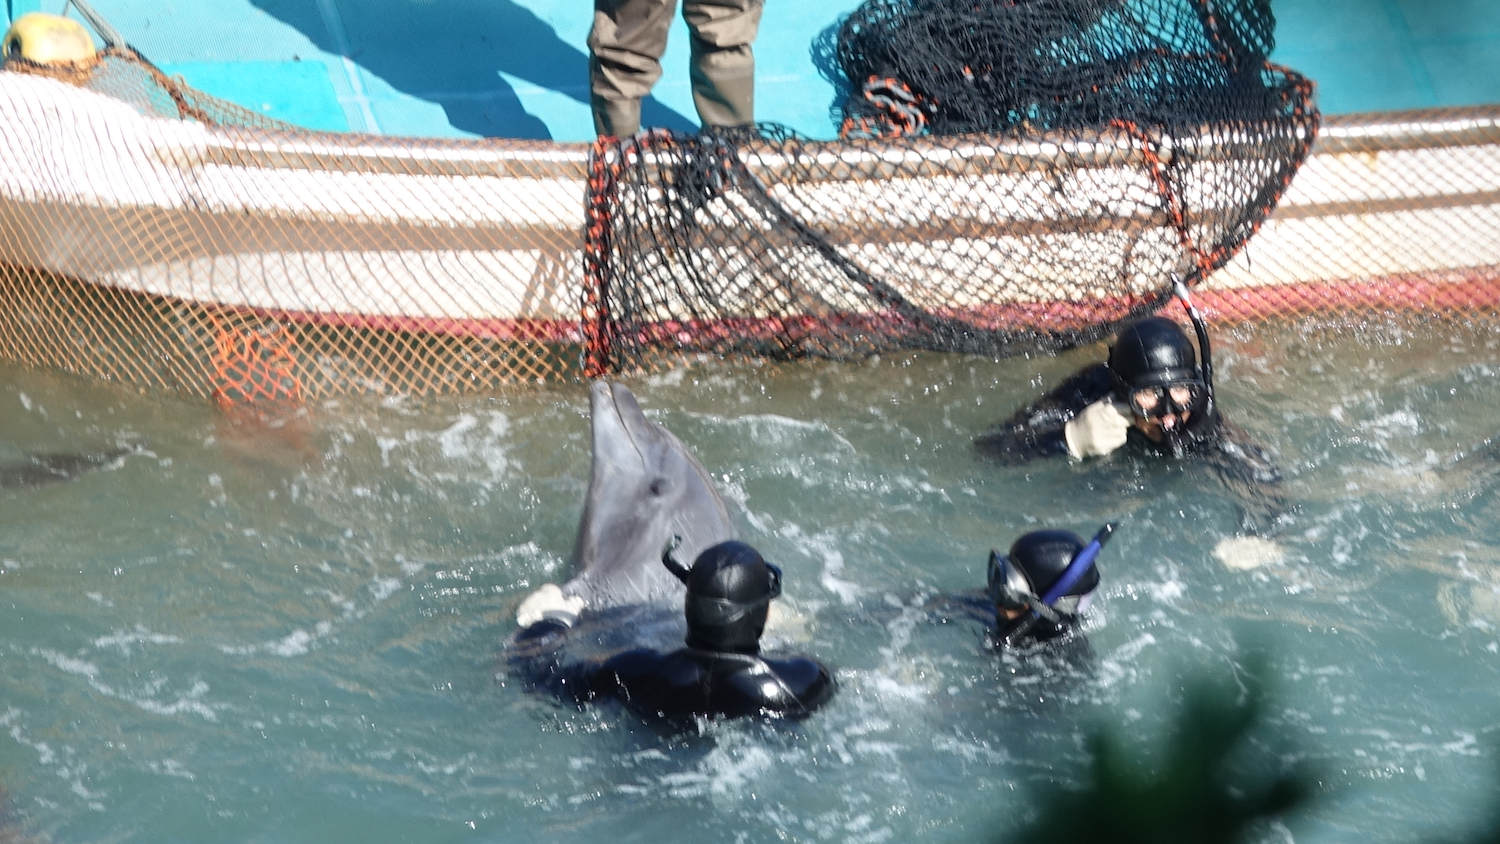 Brutality in the cove as a captive selection of bottlenose dolphins takes place, Taiji, Japan. Credit: DolphinProject.com